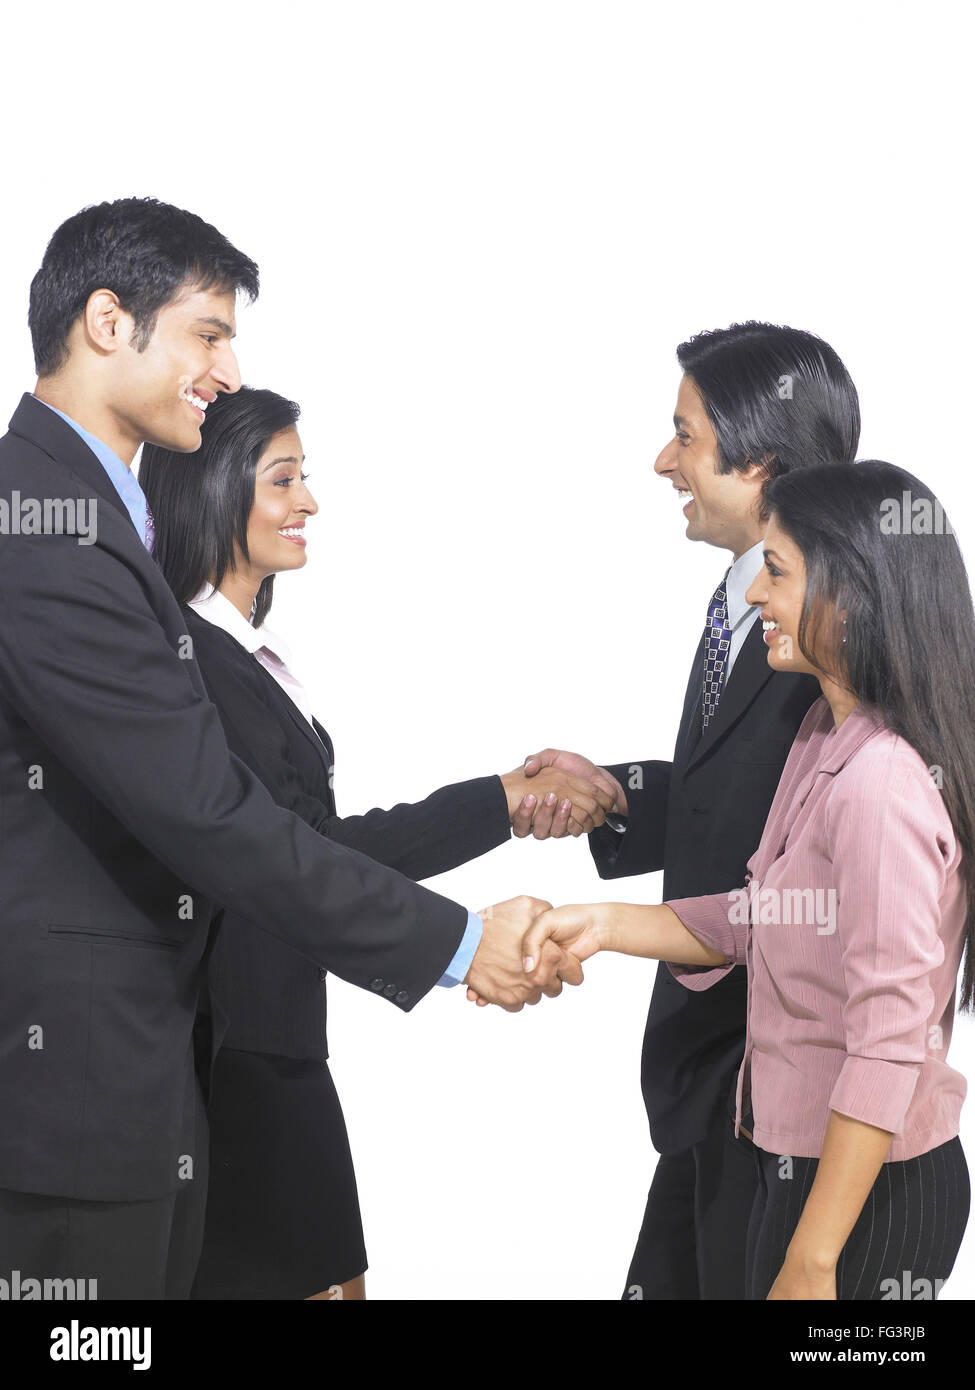 South Asian Indian executive men and women shaking hand MR - Stock Image